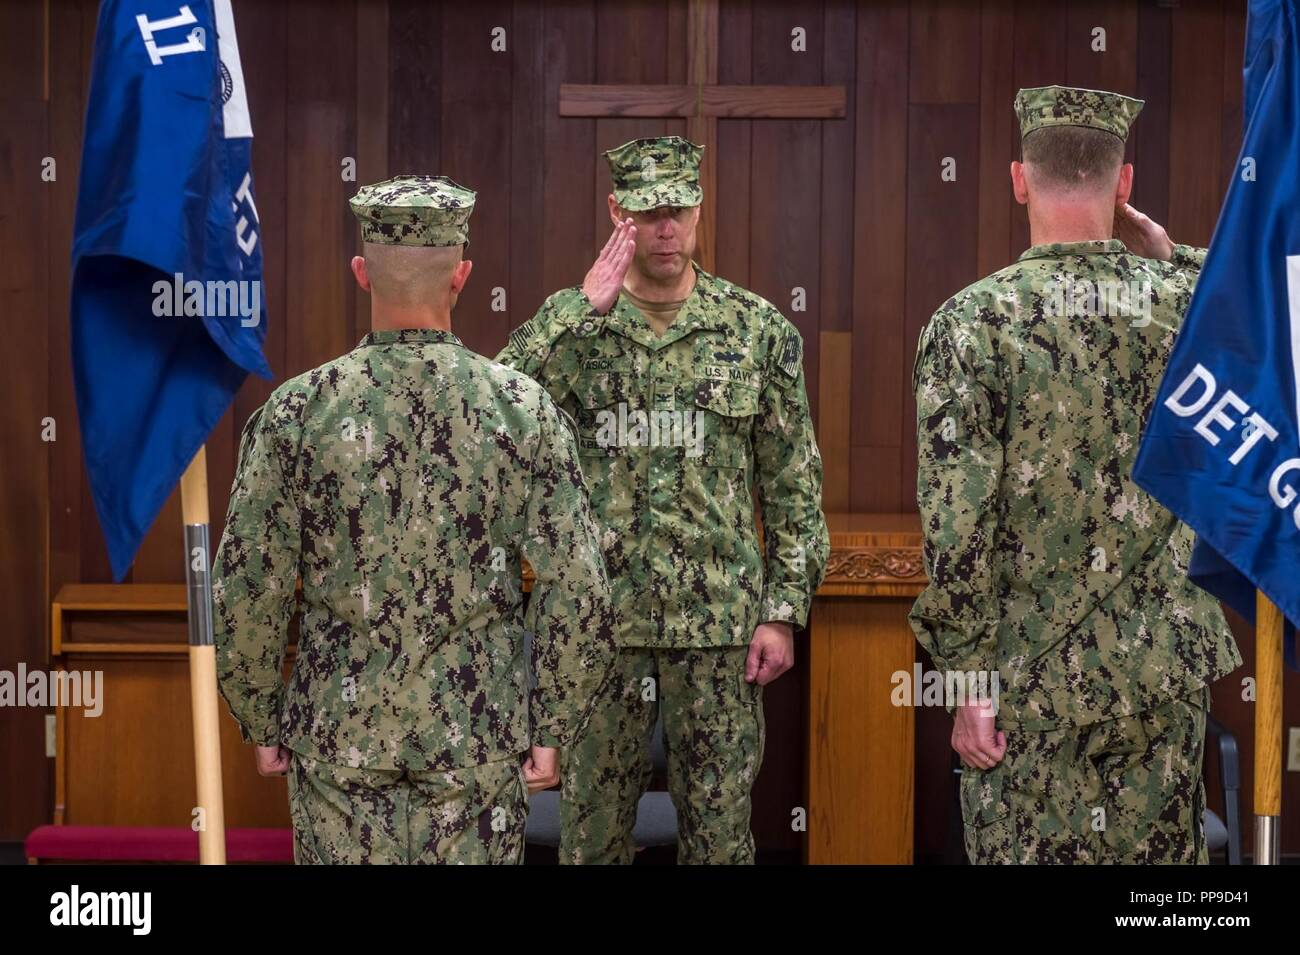 SANTA RITA, Guam (Aug. 15, 2018) Capt. Steven Stasick, commodore 30th Naval Construction Regiment, returns a salute from Lt. Peter Smagur, Naval Mobile Construction Battalion (NMCB) 1, Det. Guam, officer-in-charge, during a relief in place/transfer of authority (RIP/TOA) ceremony. During the ceremony, NMCB 11 Det. Guam was relieved by NMCB 1 Det. Guam. NMCB 11 Det. Guam successfully completed a six-month deployment to Guam, during which they completed many construction projects throughout the Indo-Pacific region. - Stock Image